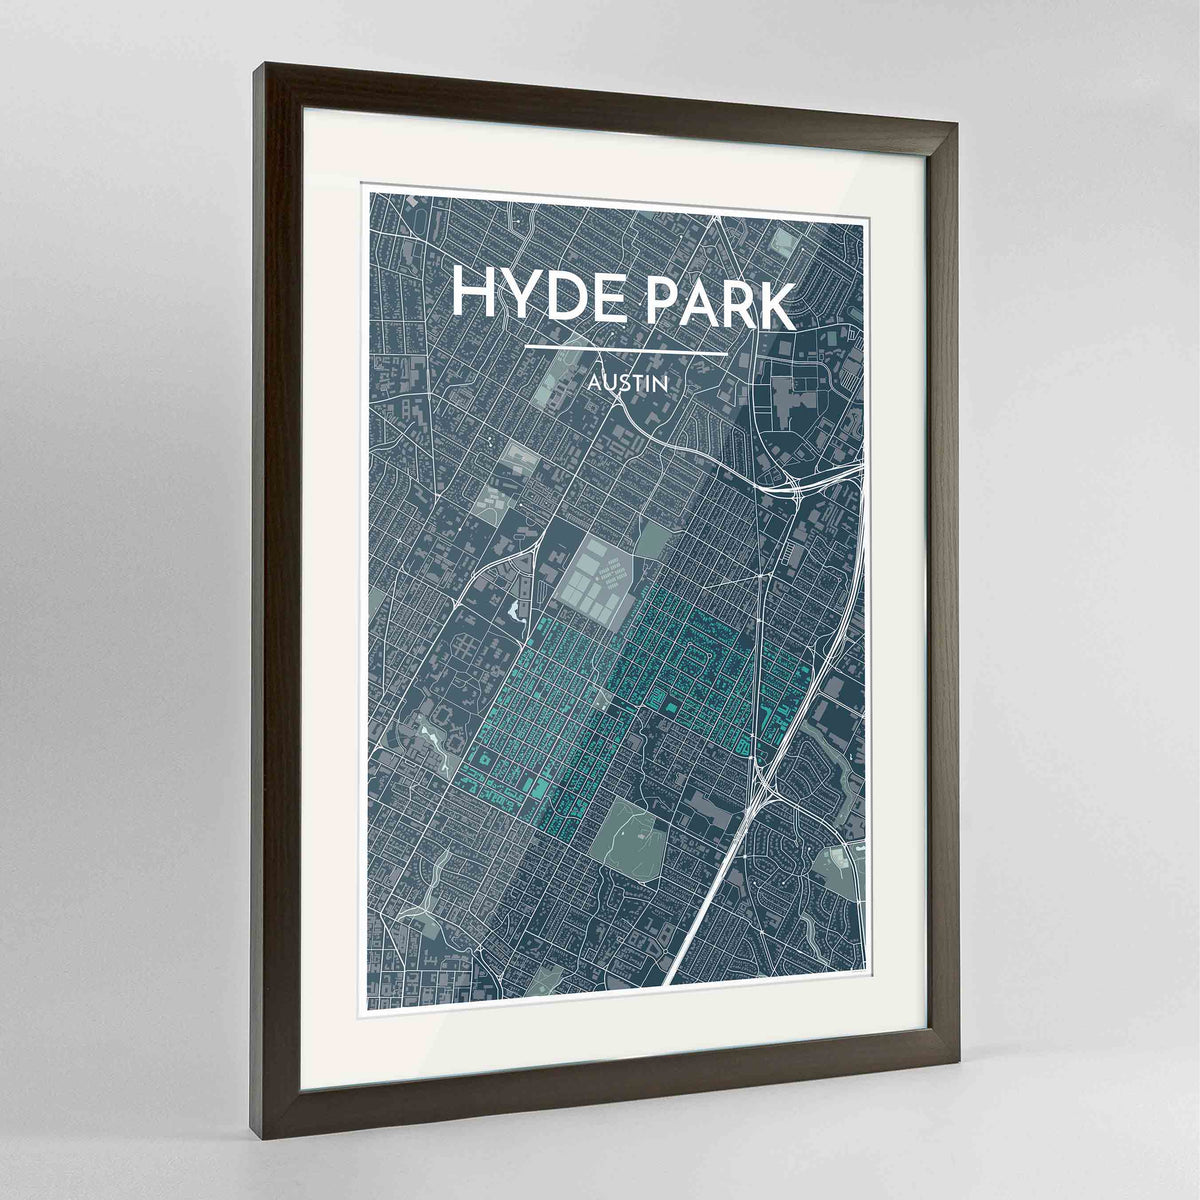 "Framed Hyde Park Neighbourhood of Austin Map Art Print 24x36"" Contemporary Walnut frame Point Two Design Group"